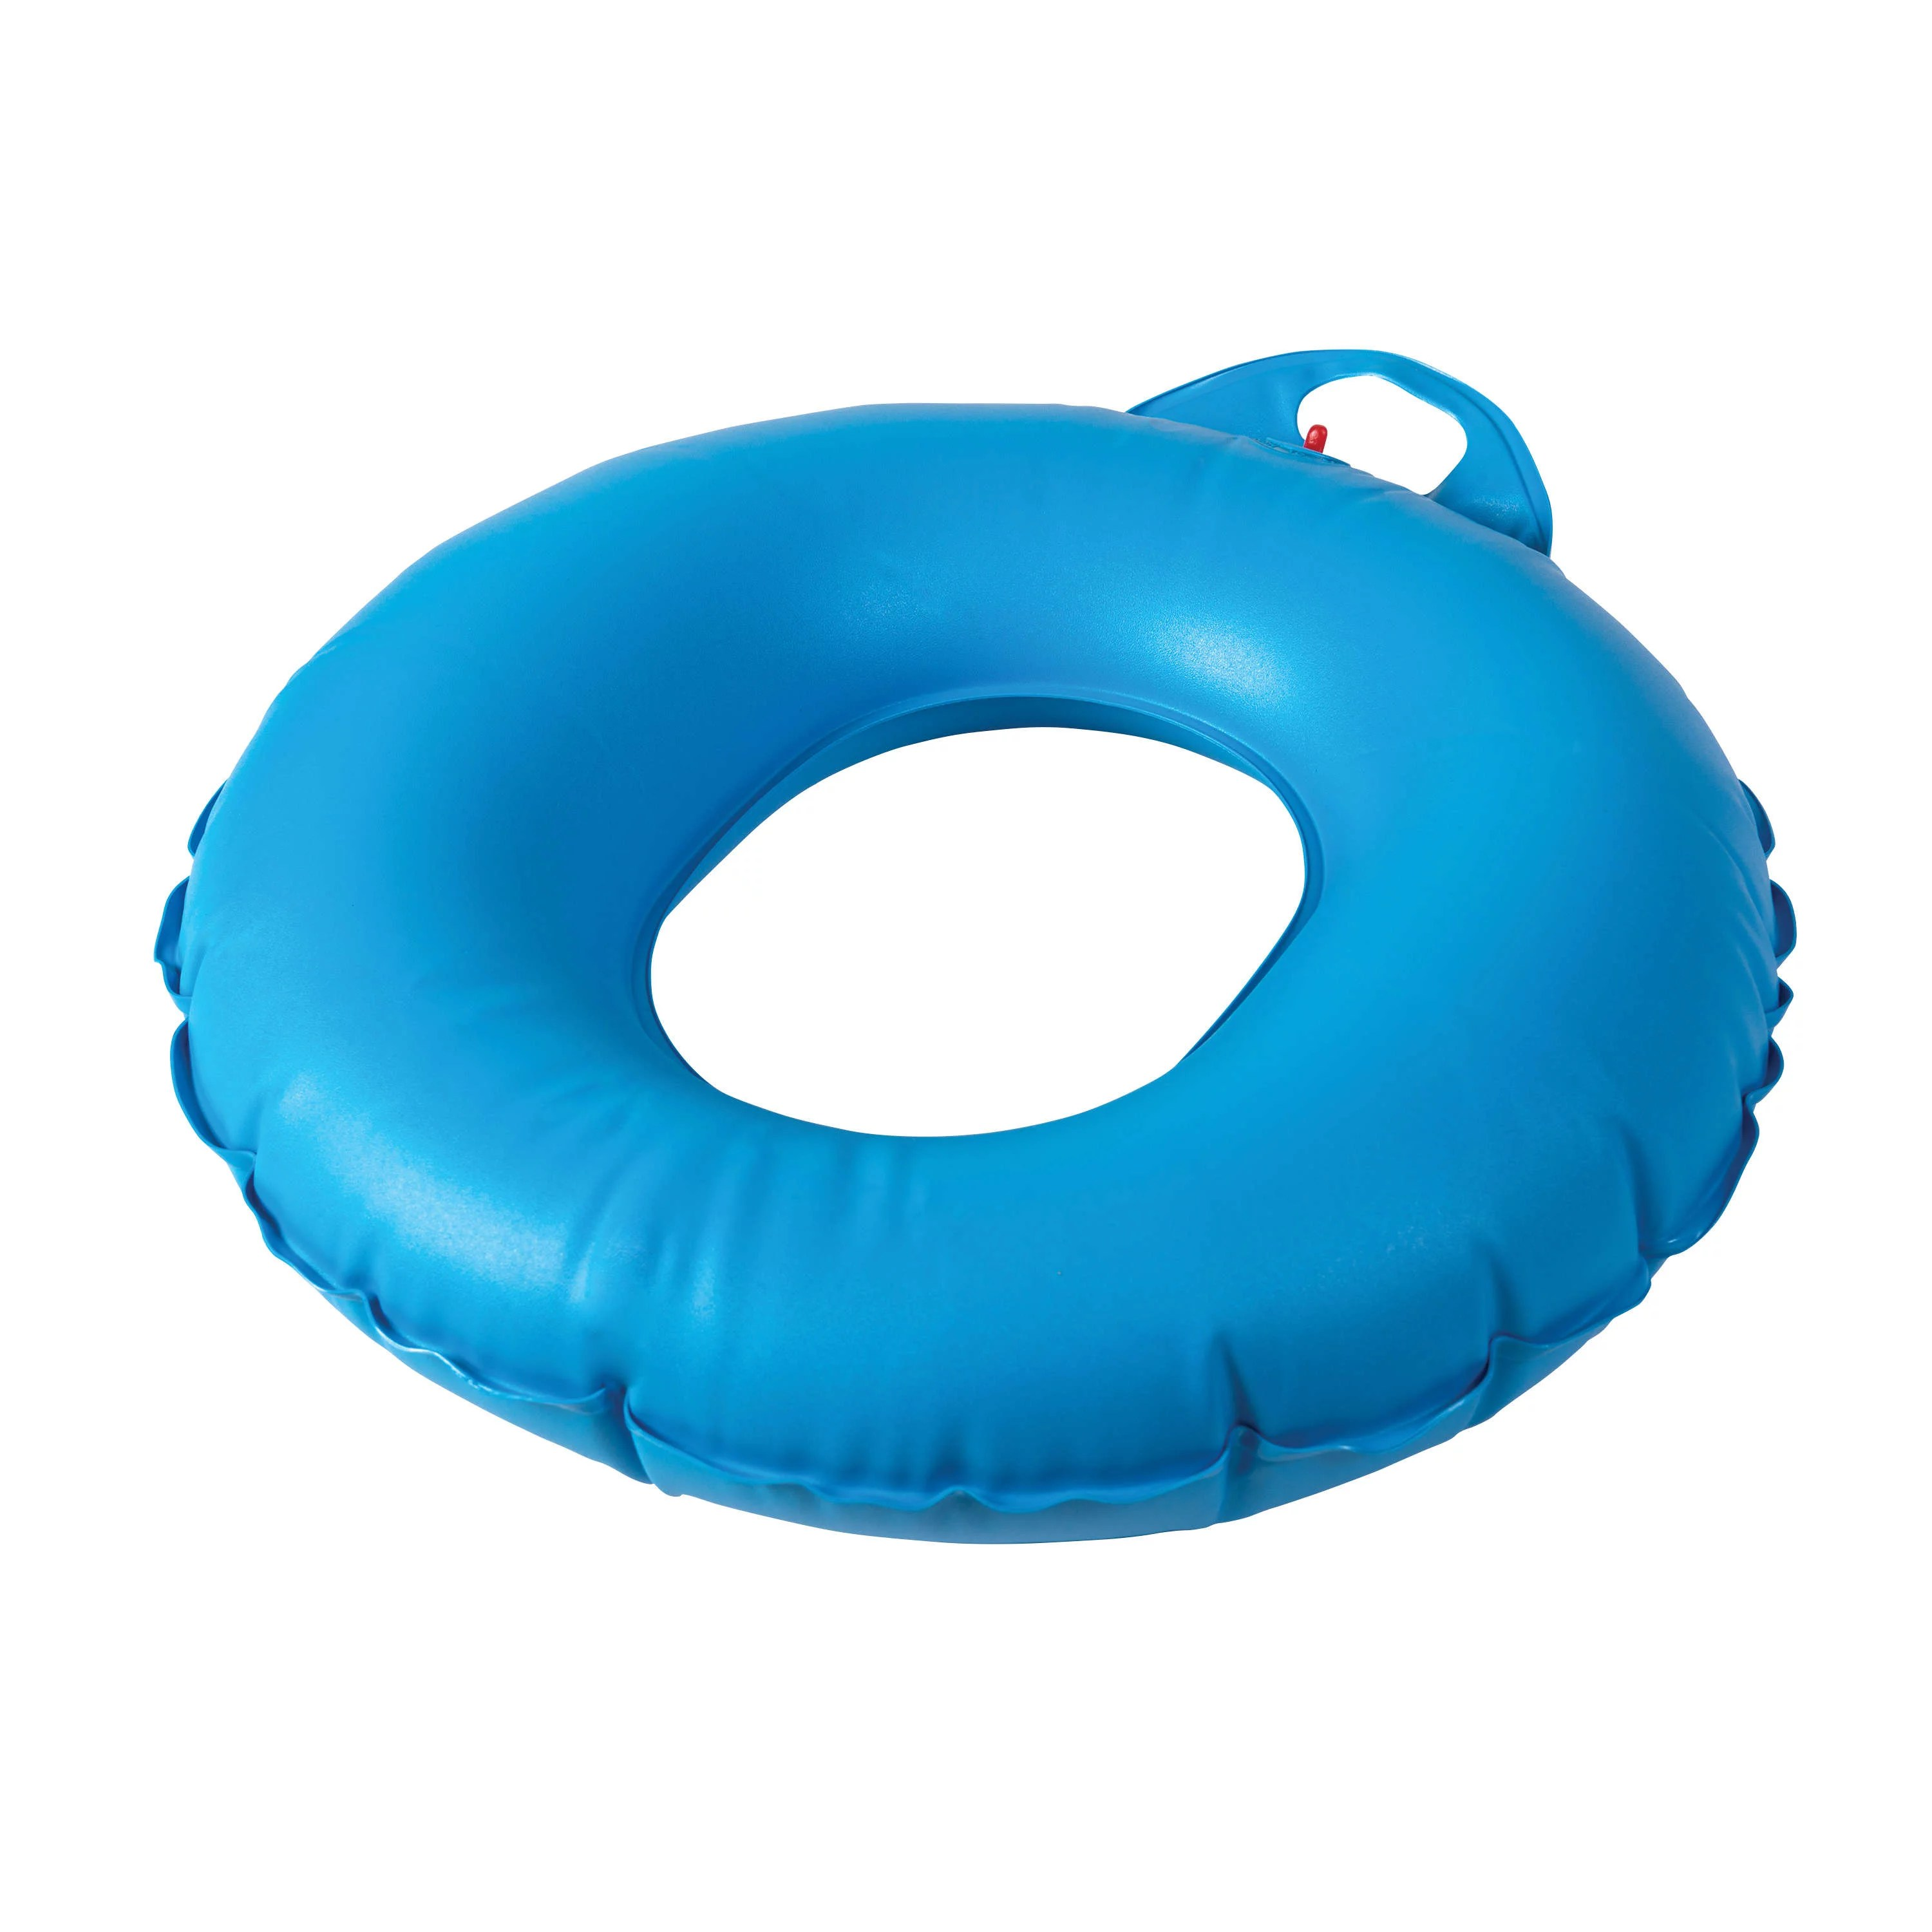 dmi donut inflatable seat cushion for tailbone and bed sores donut pillow for sitting 16 inches blue